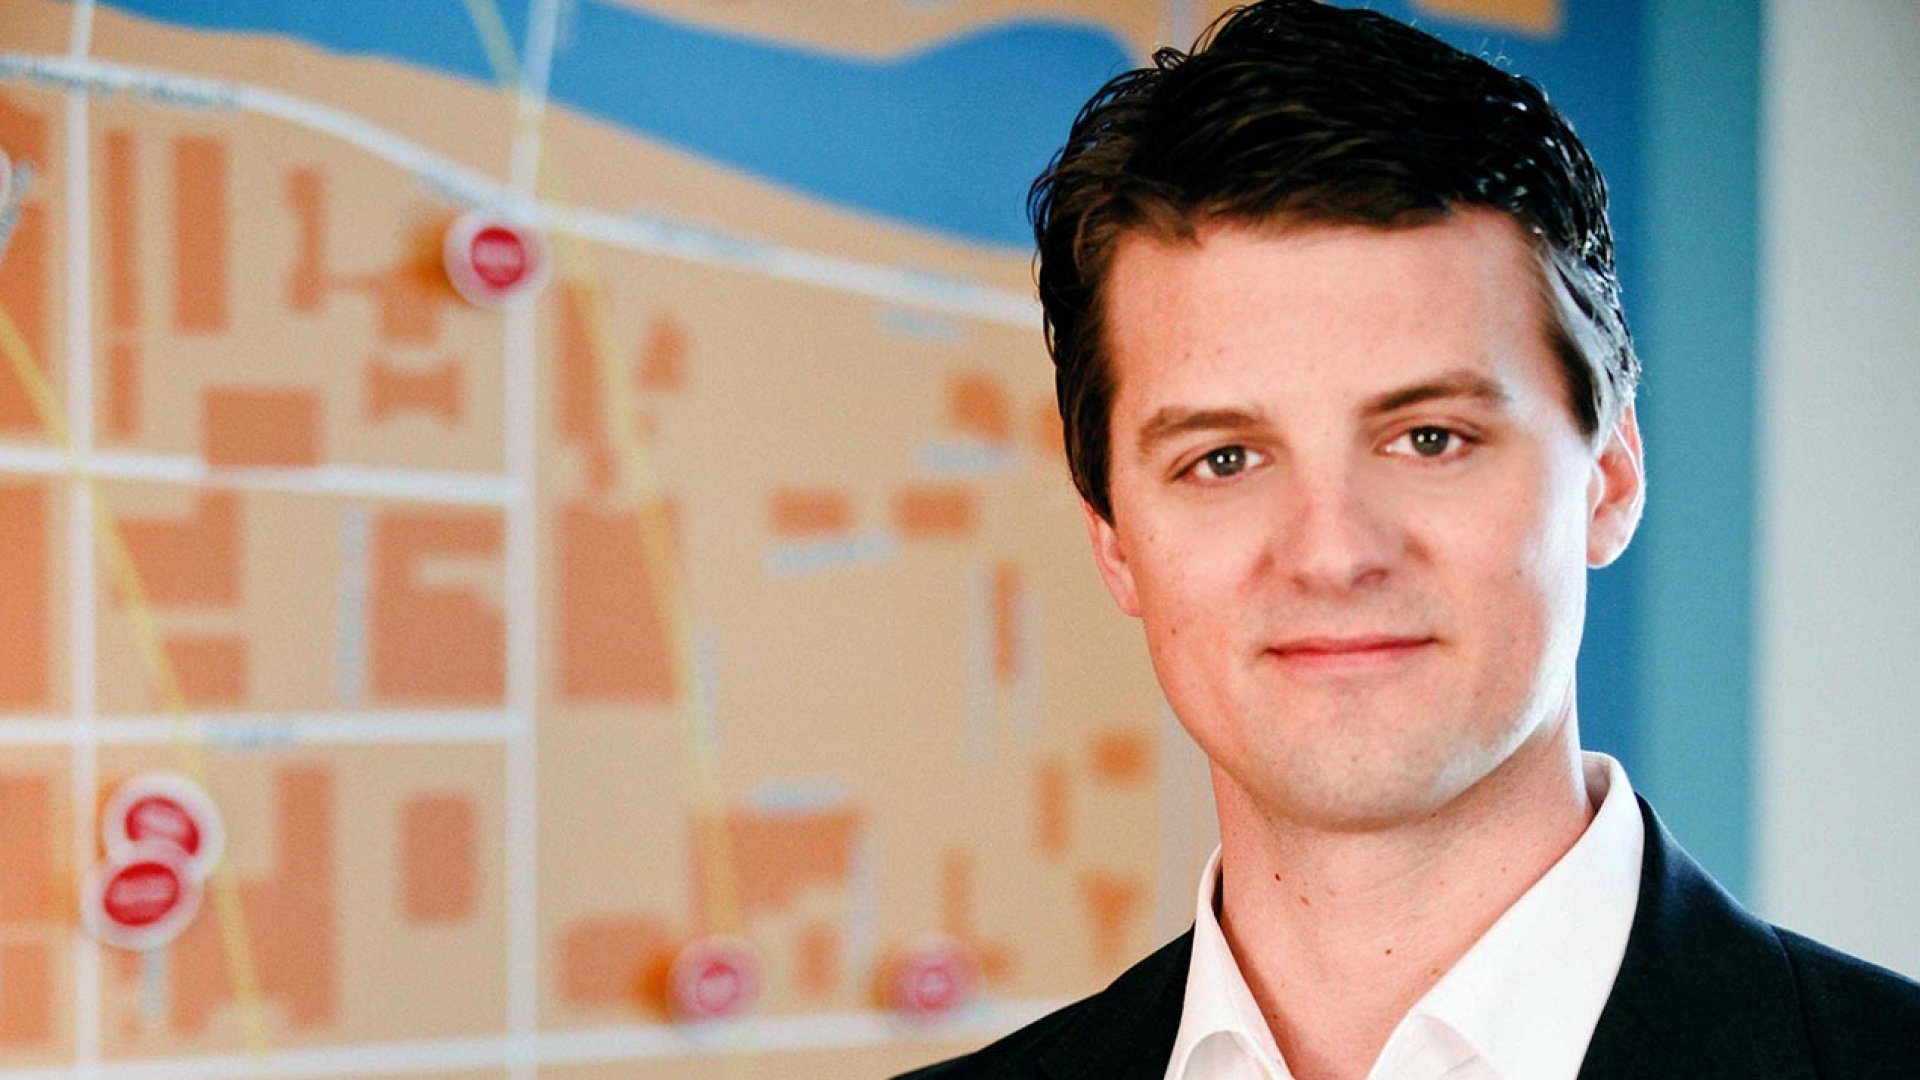 GrubHub Shares Rise On Higher Than Expected Earnings